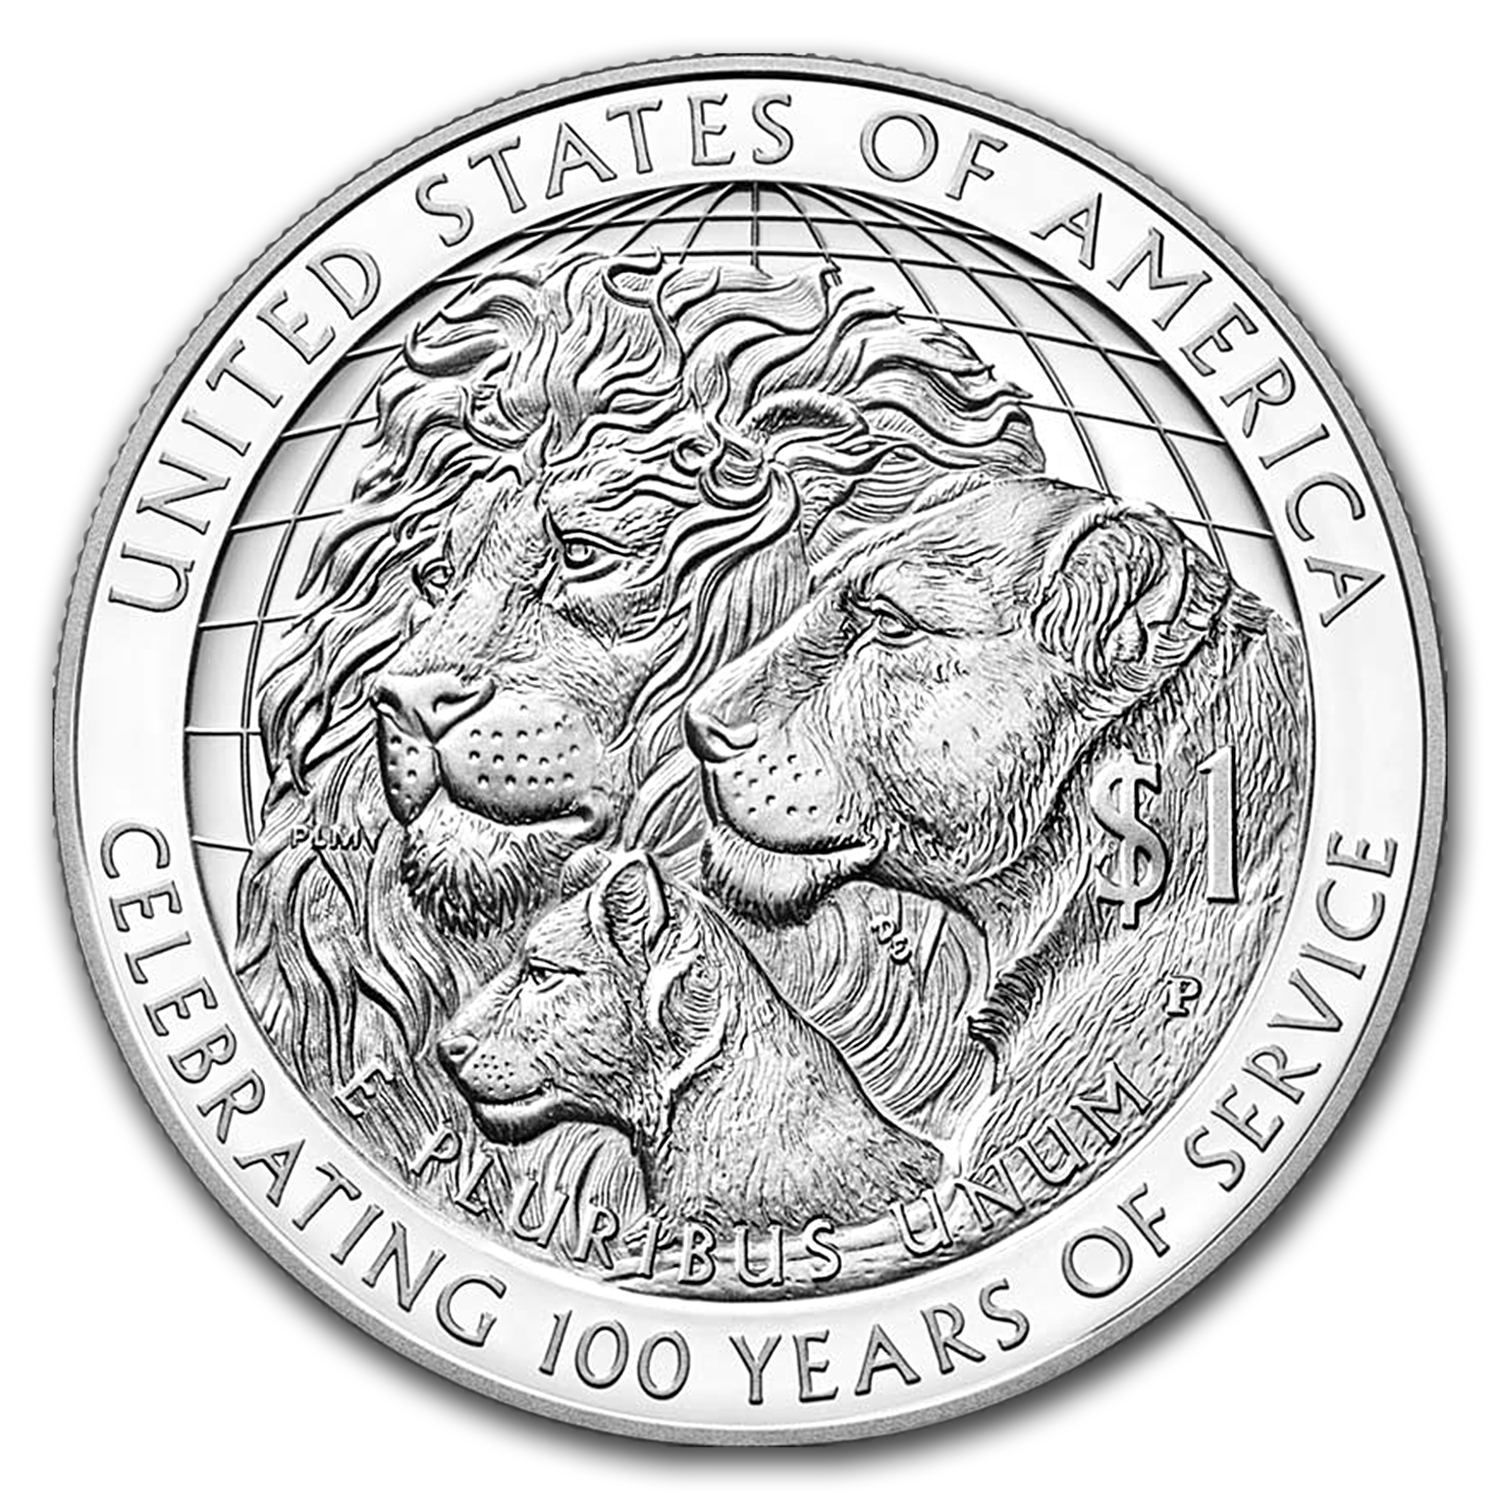 2017 Lions Club International Silver BU (Box & COA)